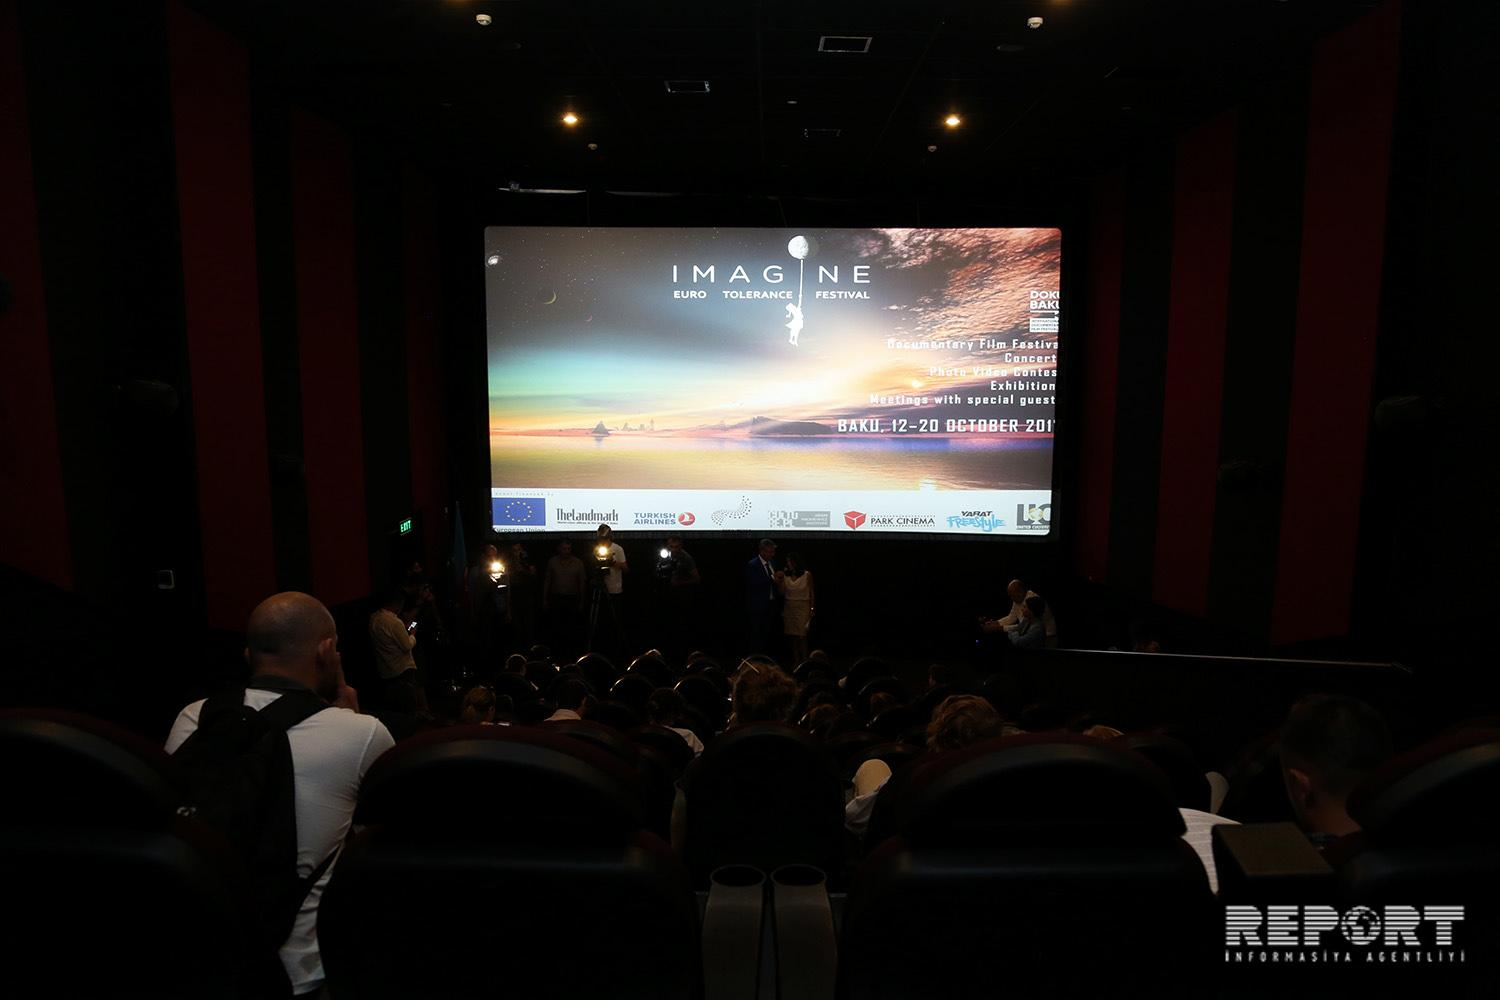 About 40 films to be screened at Festival of Documentaries in Baku